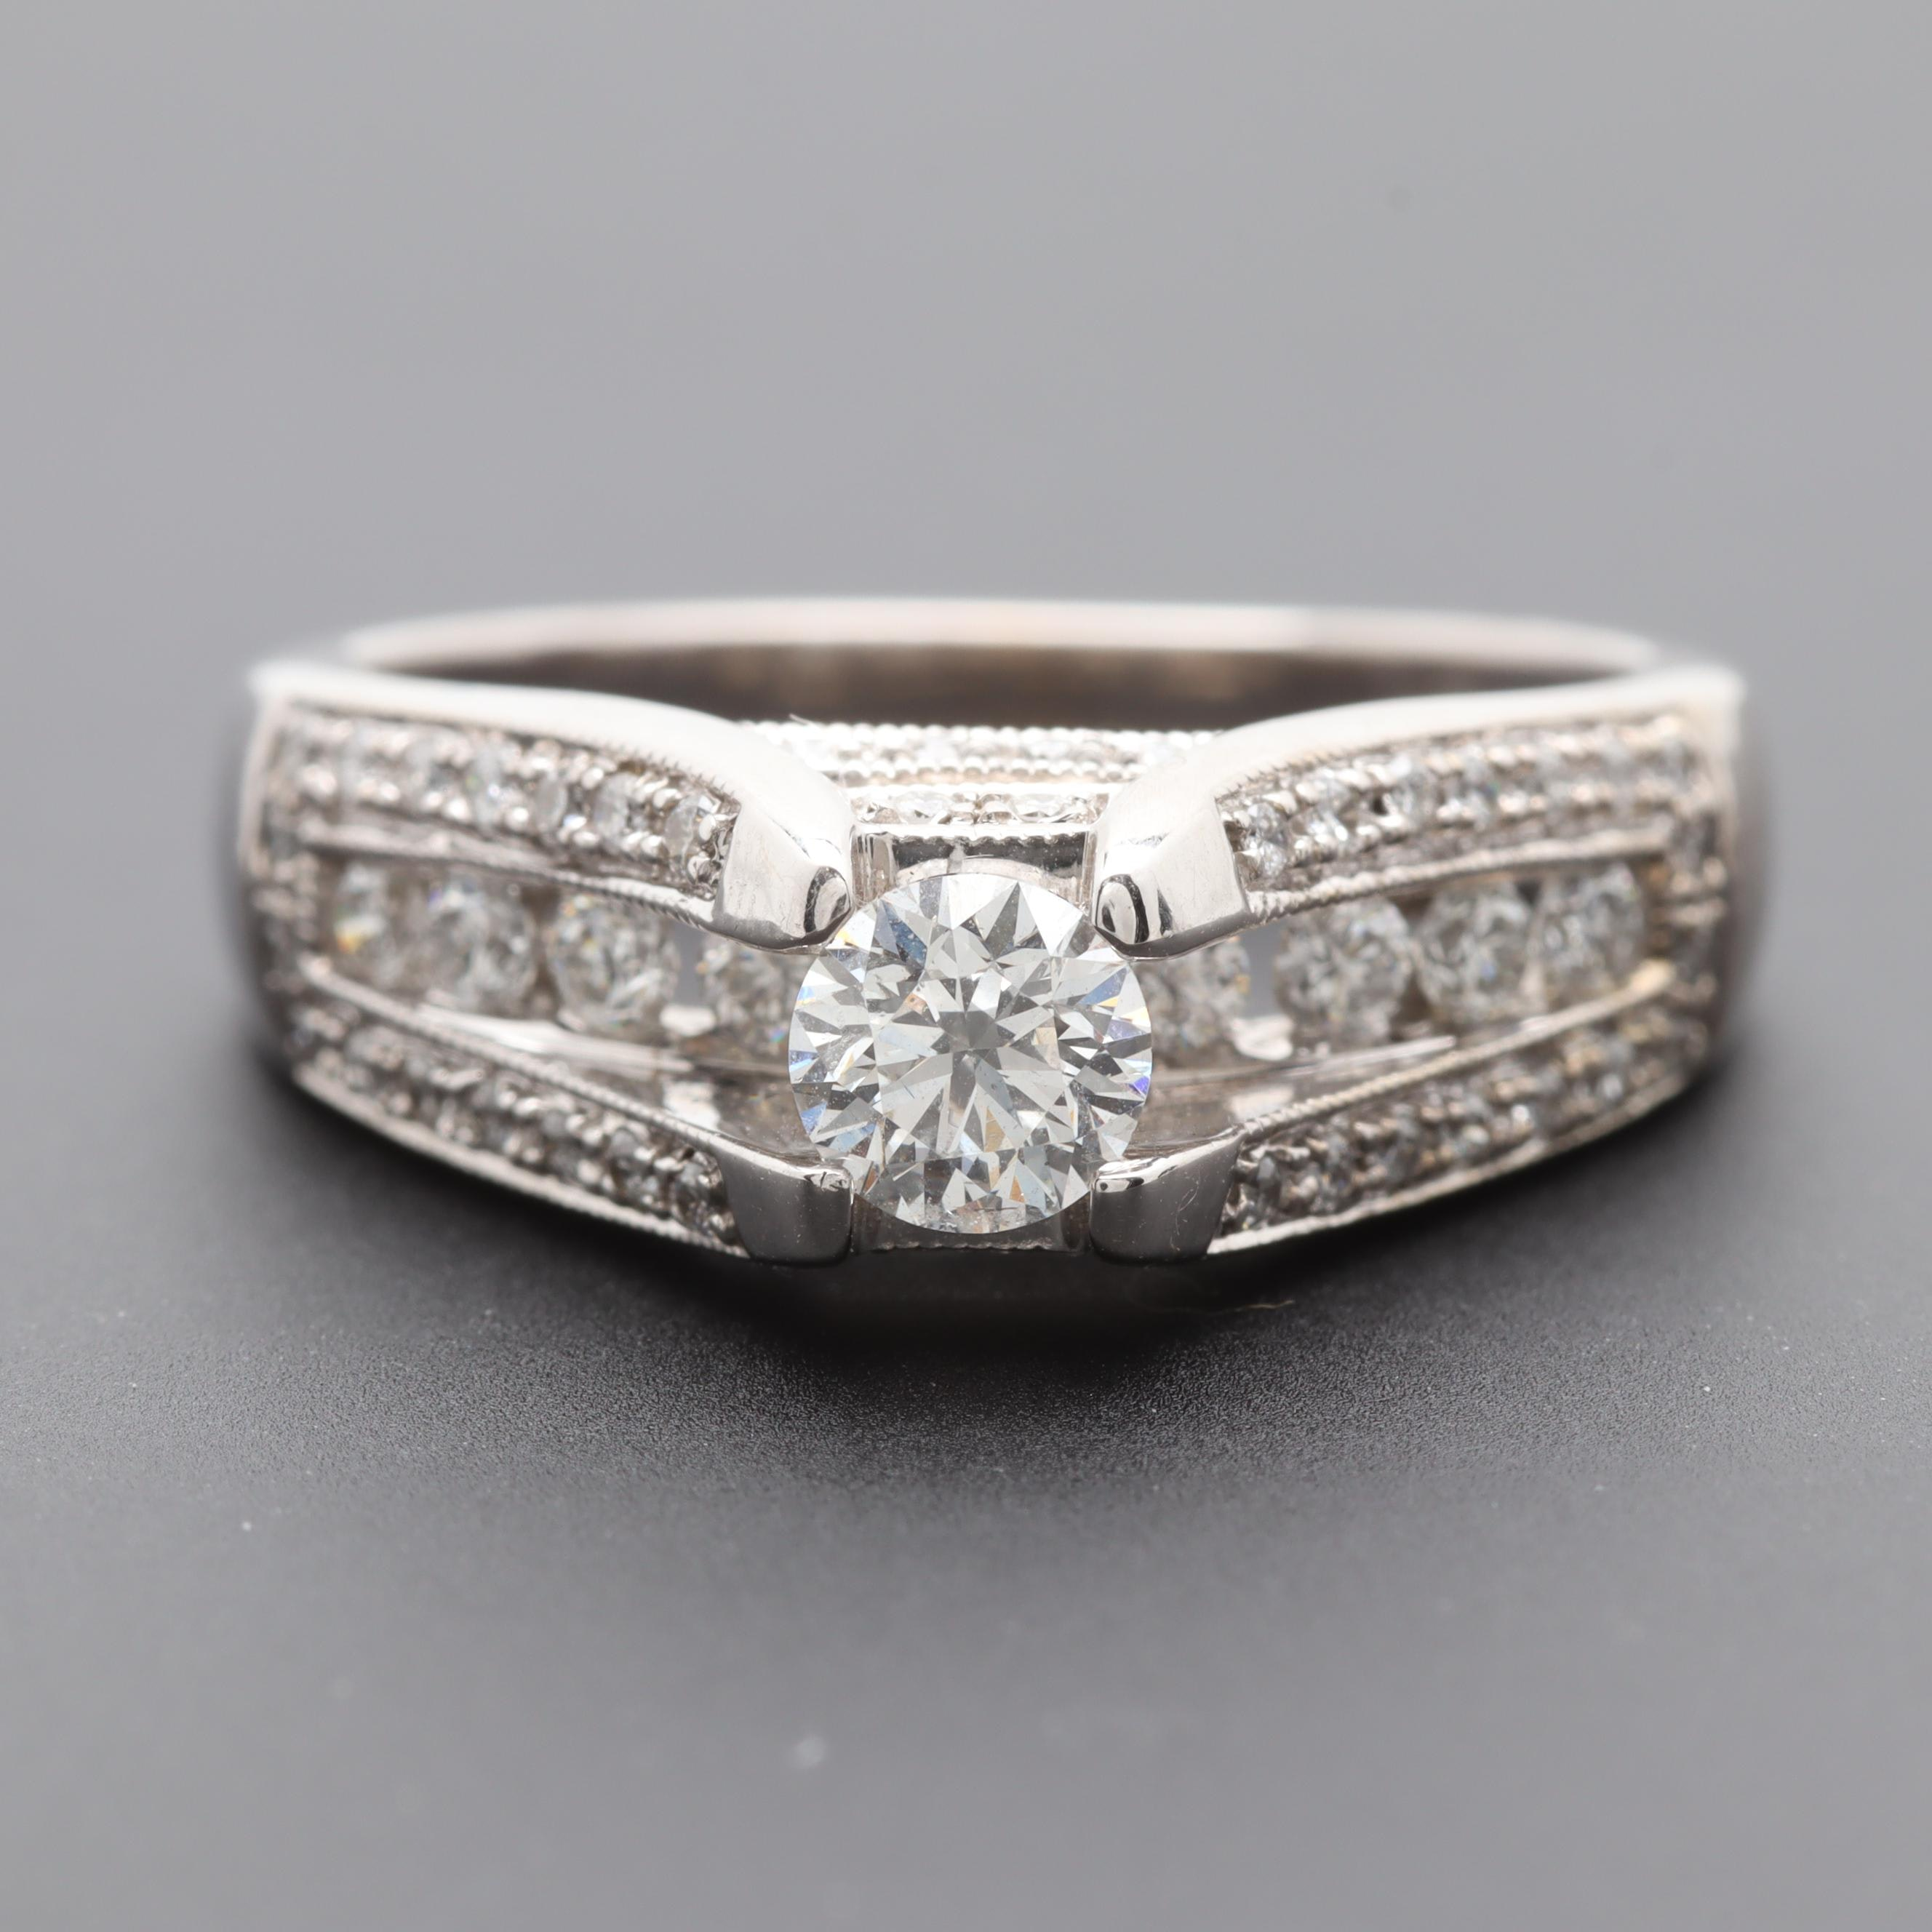 14K White Gold 1.08 CTW Diamond Ring